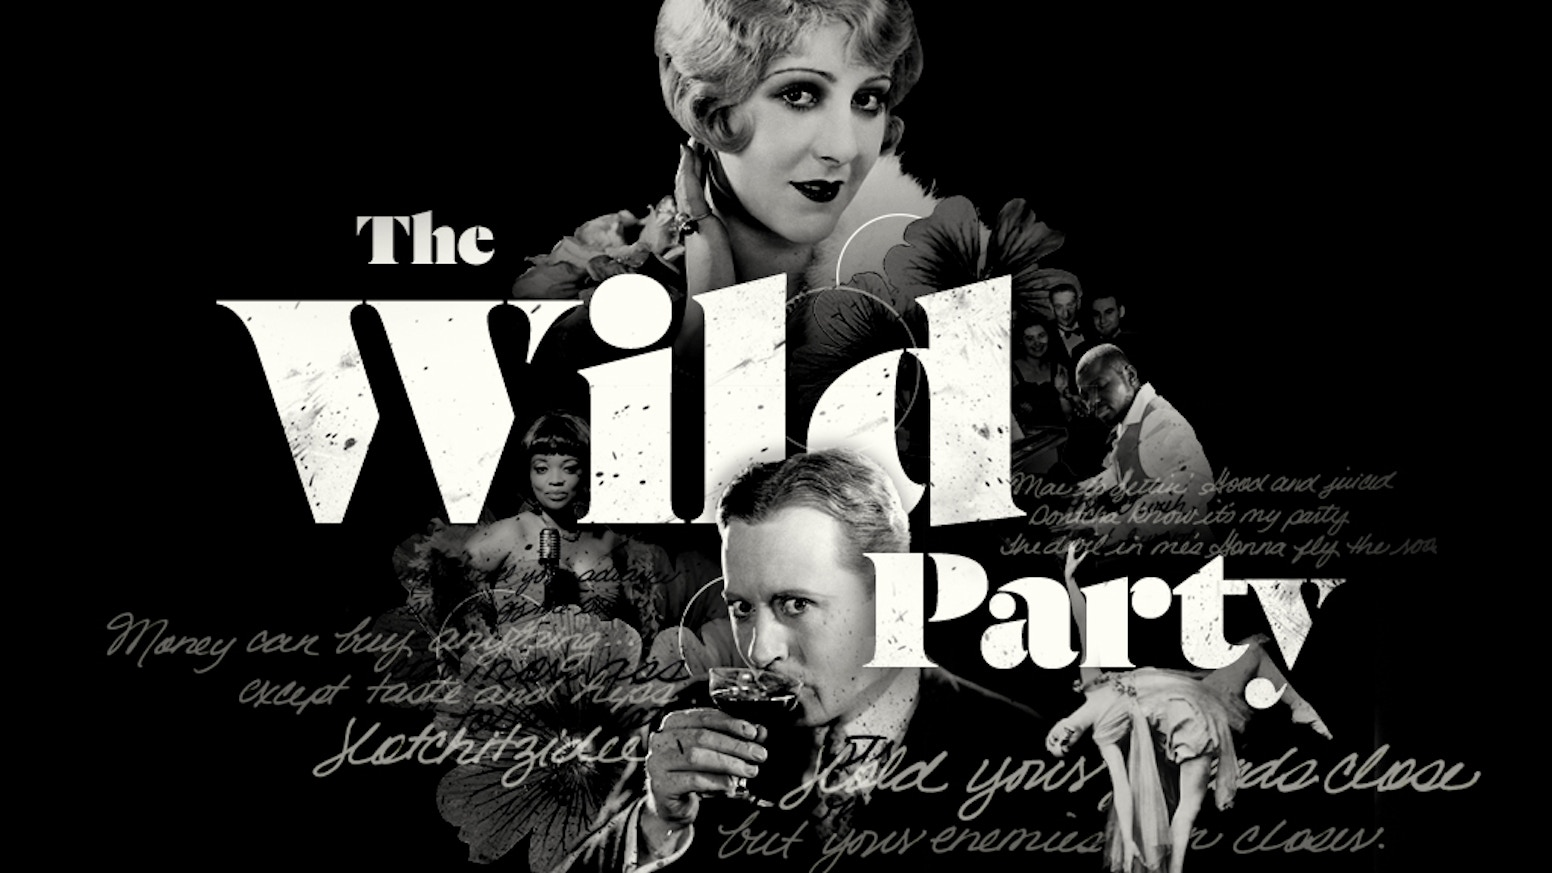 Unleash your inner flapper at a 360˚ musical set in the Roaring Twenties, brought to life by the producers of Sweet & Lucky The Wild Party closed in October, 2017. Thank you to all our fans!